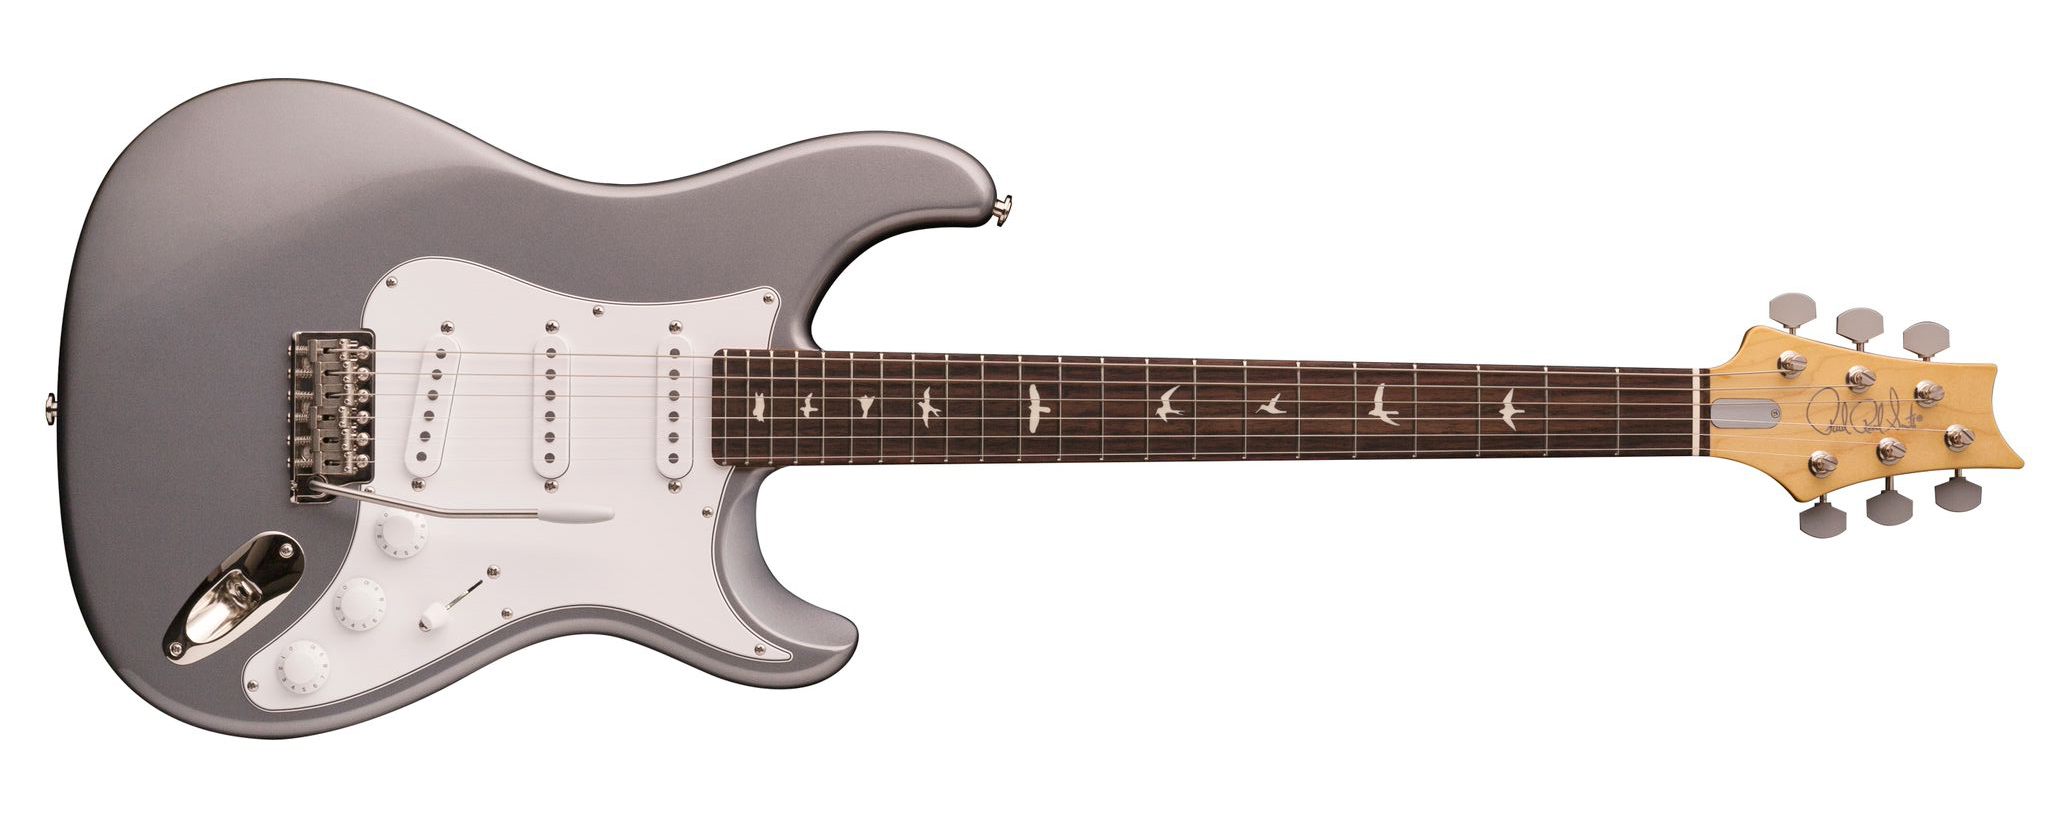 John Mayer Finally Reveals His Signature Prs Axe Guitar Com